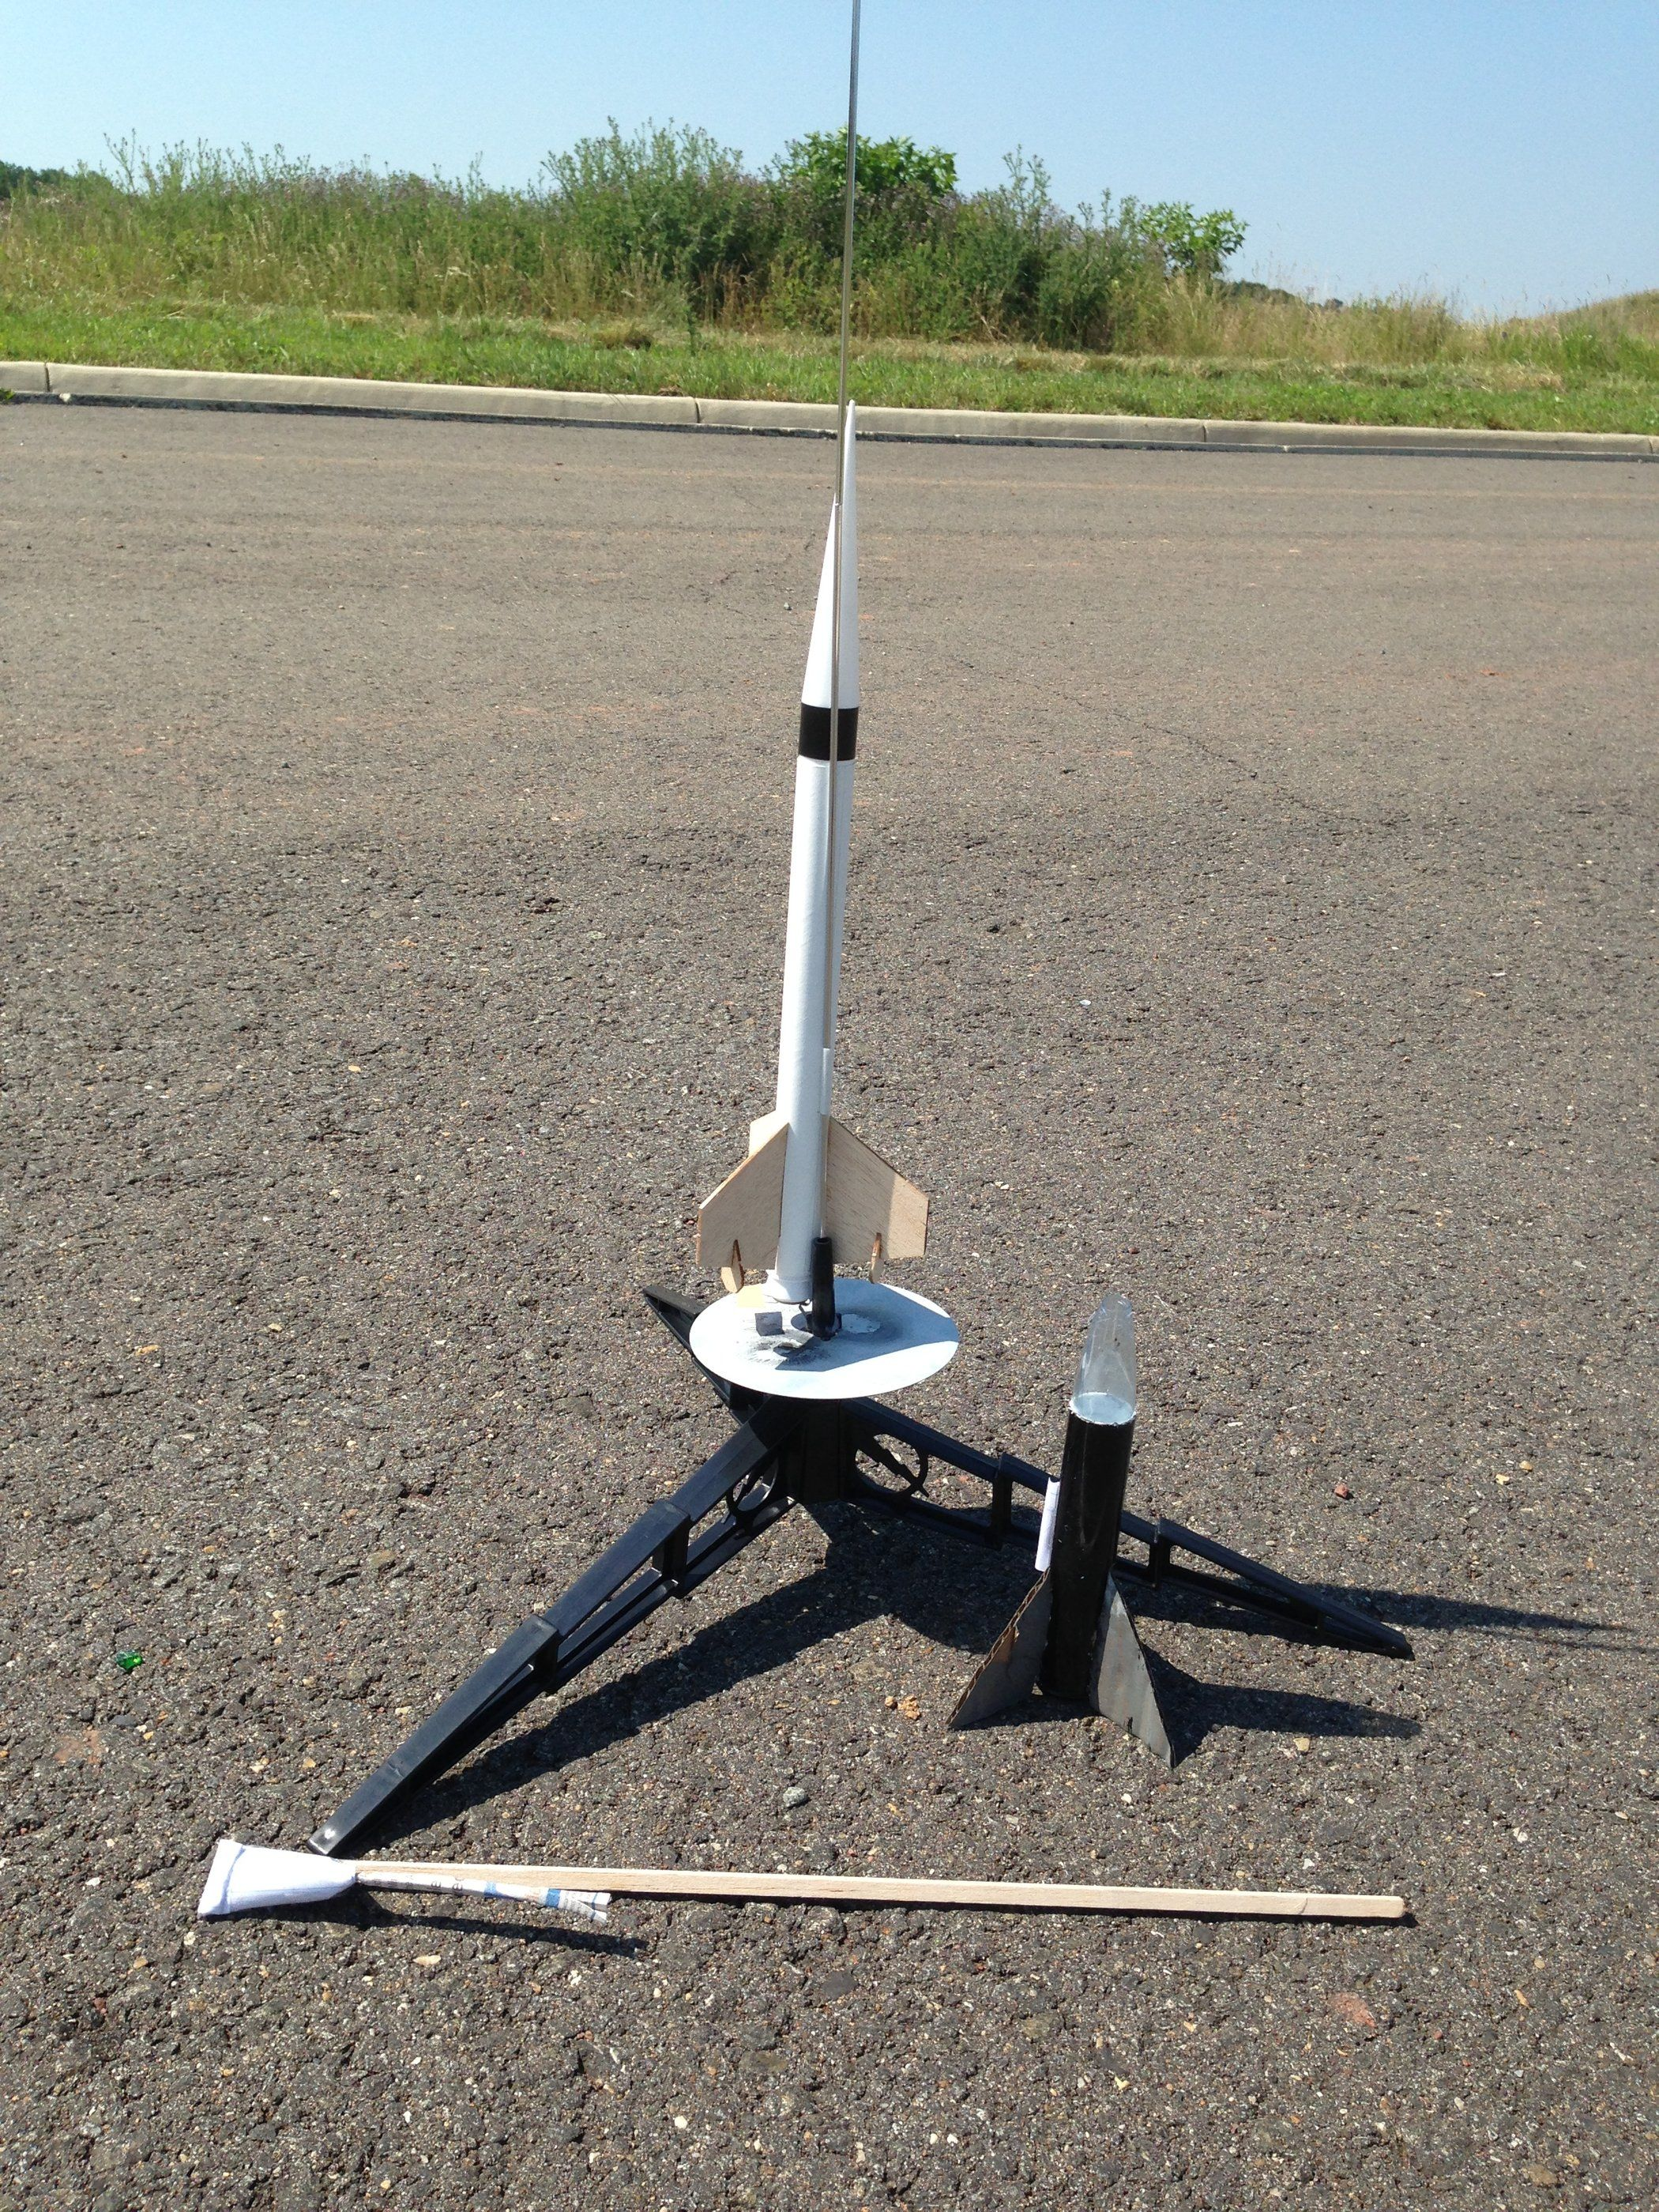 Homemade Rocket With Rocket Fuel and Engine | Tech | Rocket engine